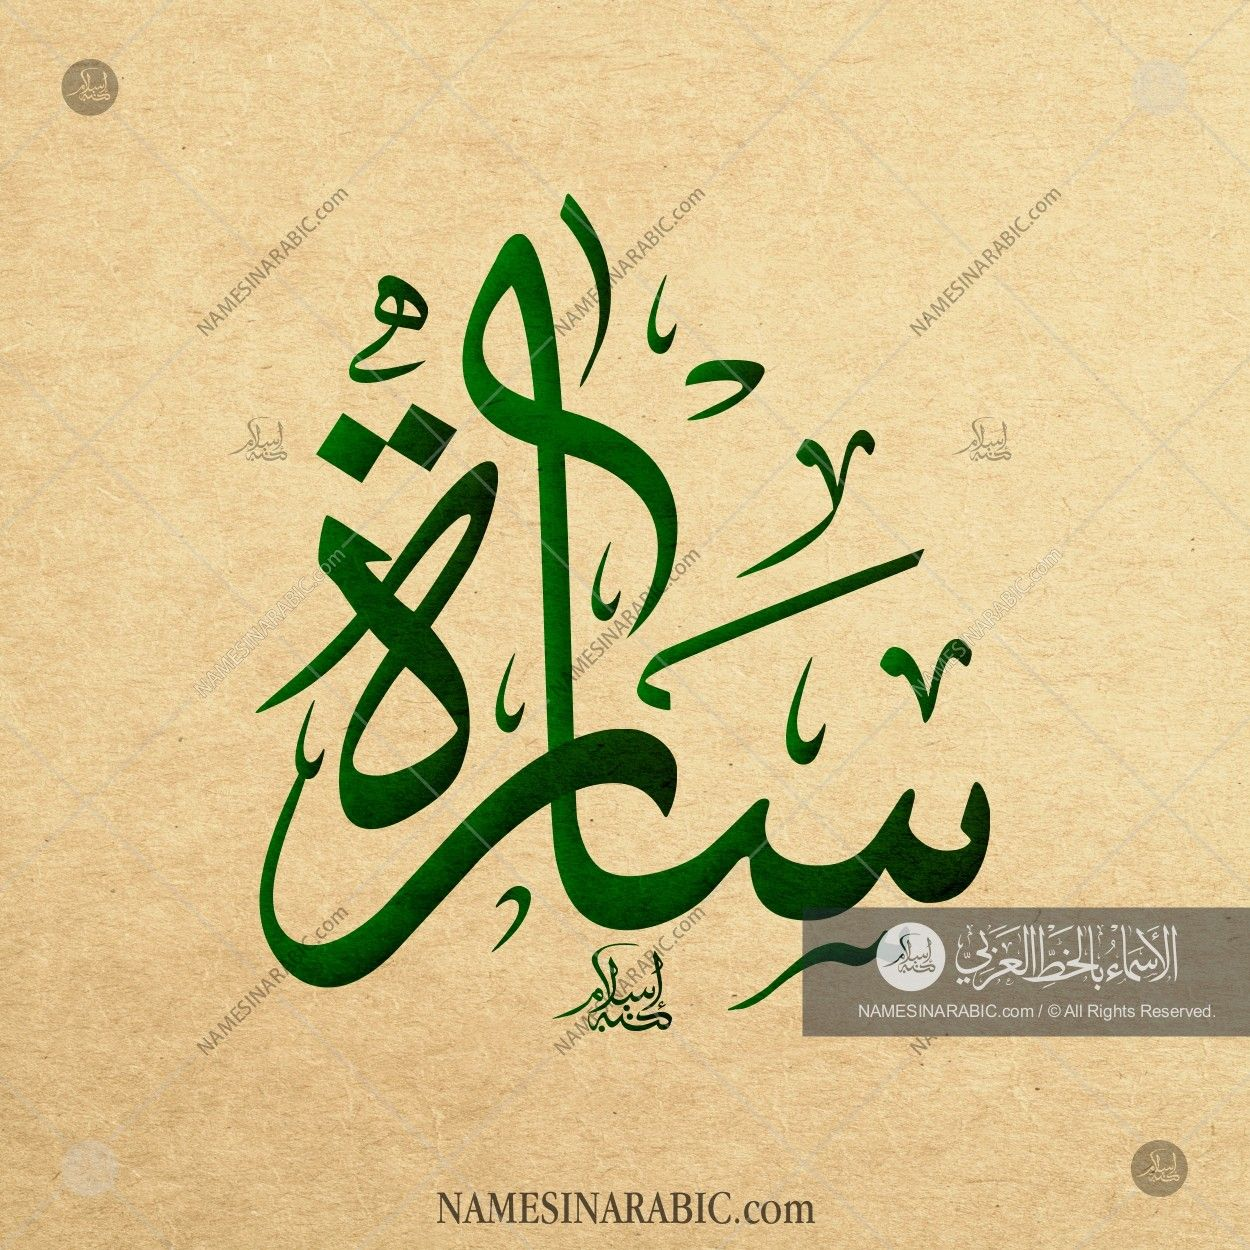 Sarah سارة Names In Arabic Calligraphy Name 5064 Calligraphy Words Calligraphy Name Arabic Calligraphy Art